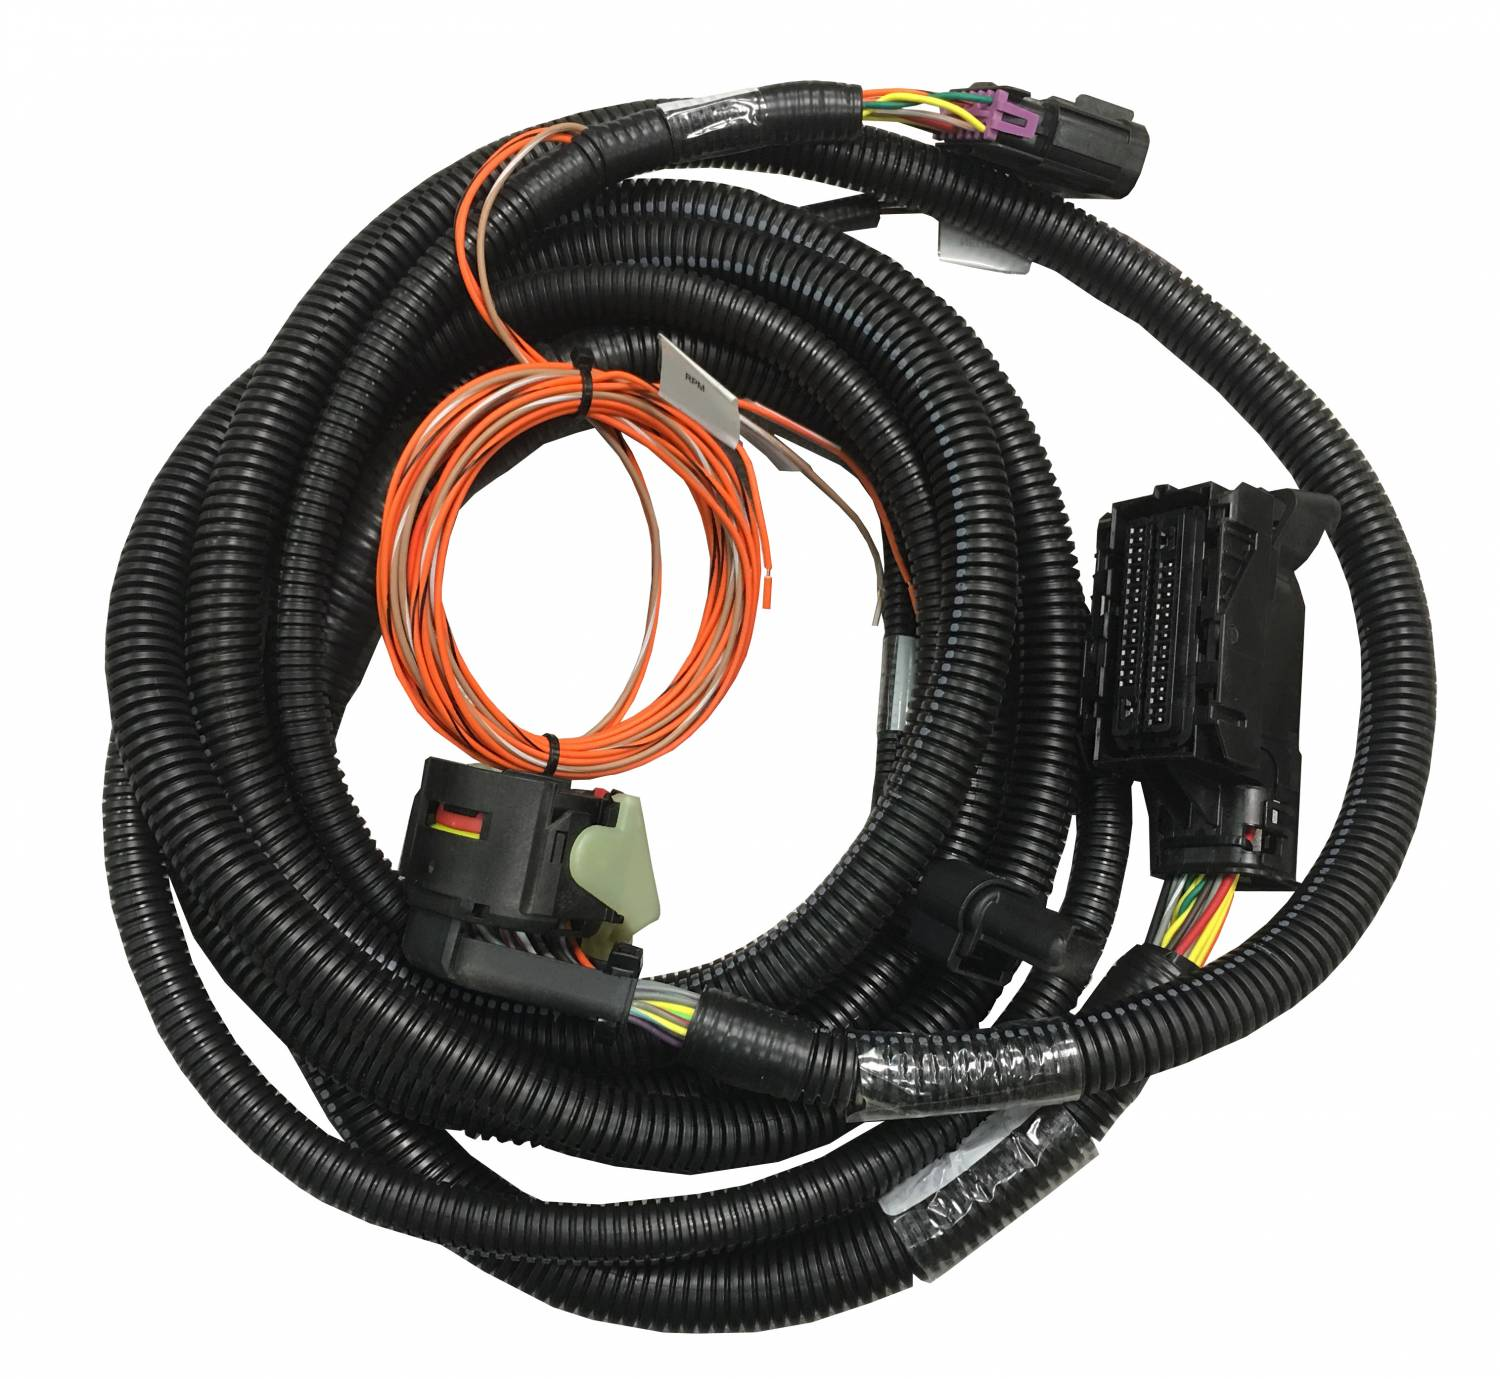 hight resolution of chevrolet performance parts 24284057 replacement harness for 8l90e transmission kit